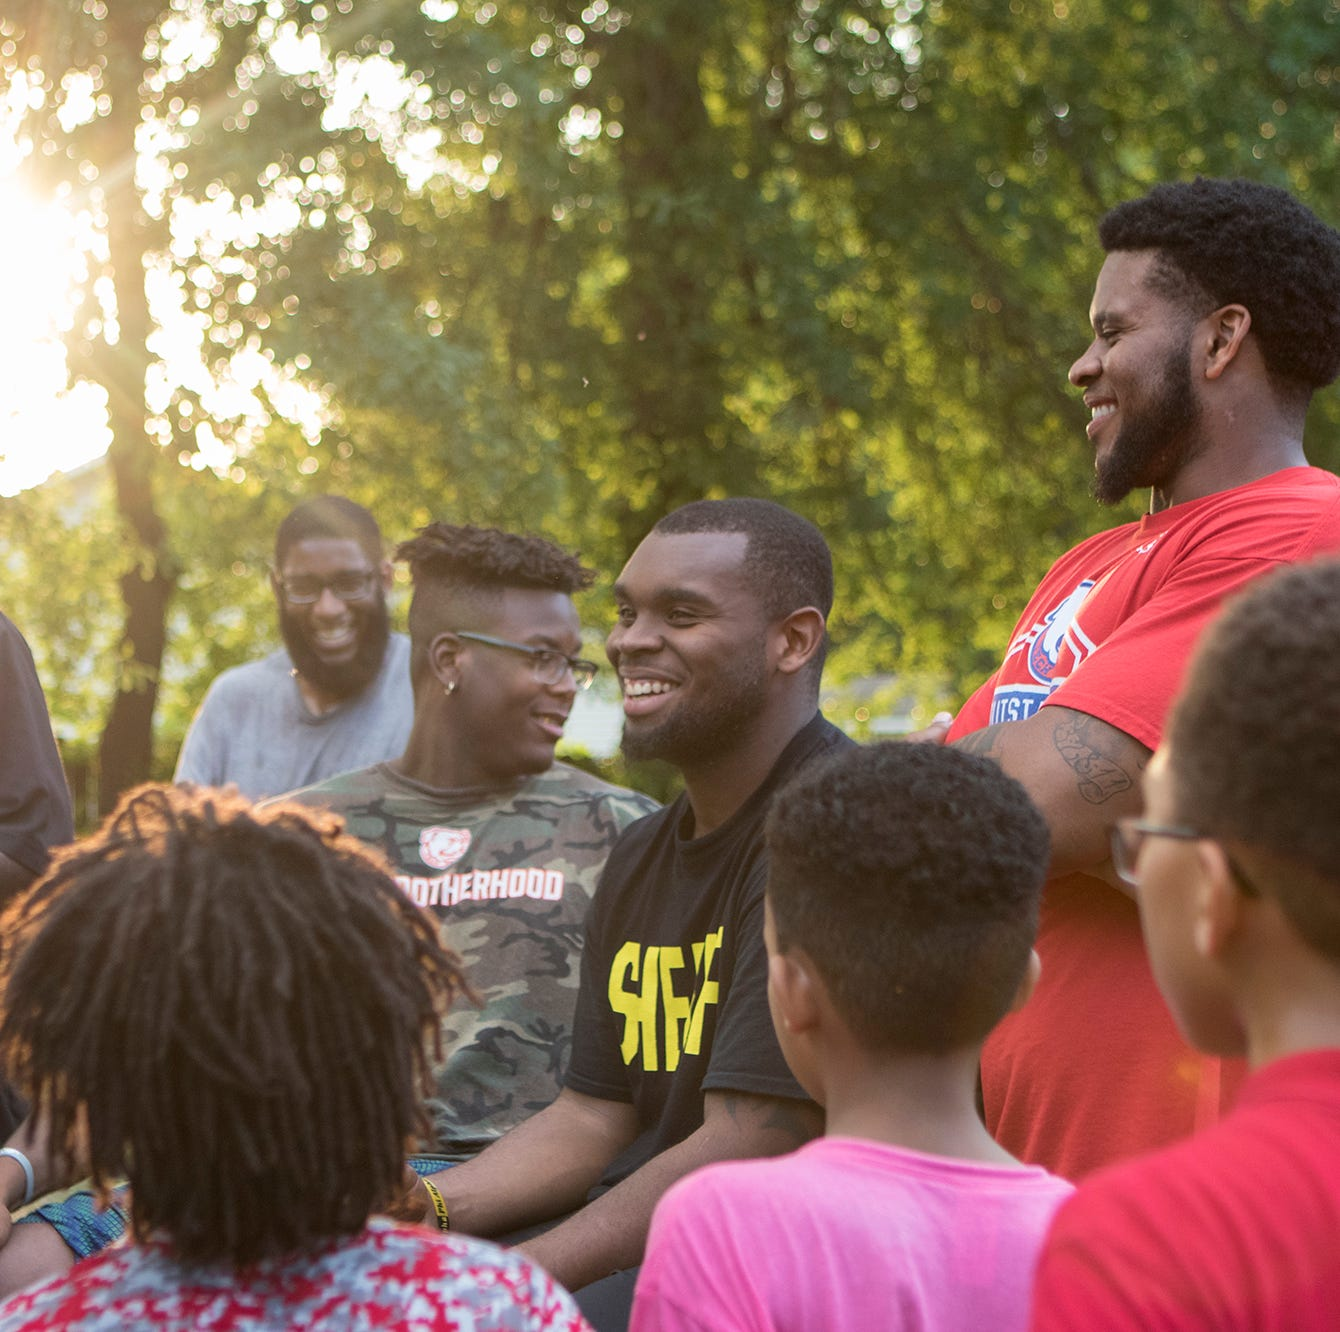 LA Tech players uplift Ruston kids' morale, provide escape after tornado with day of fun